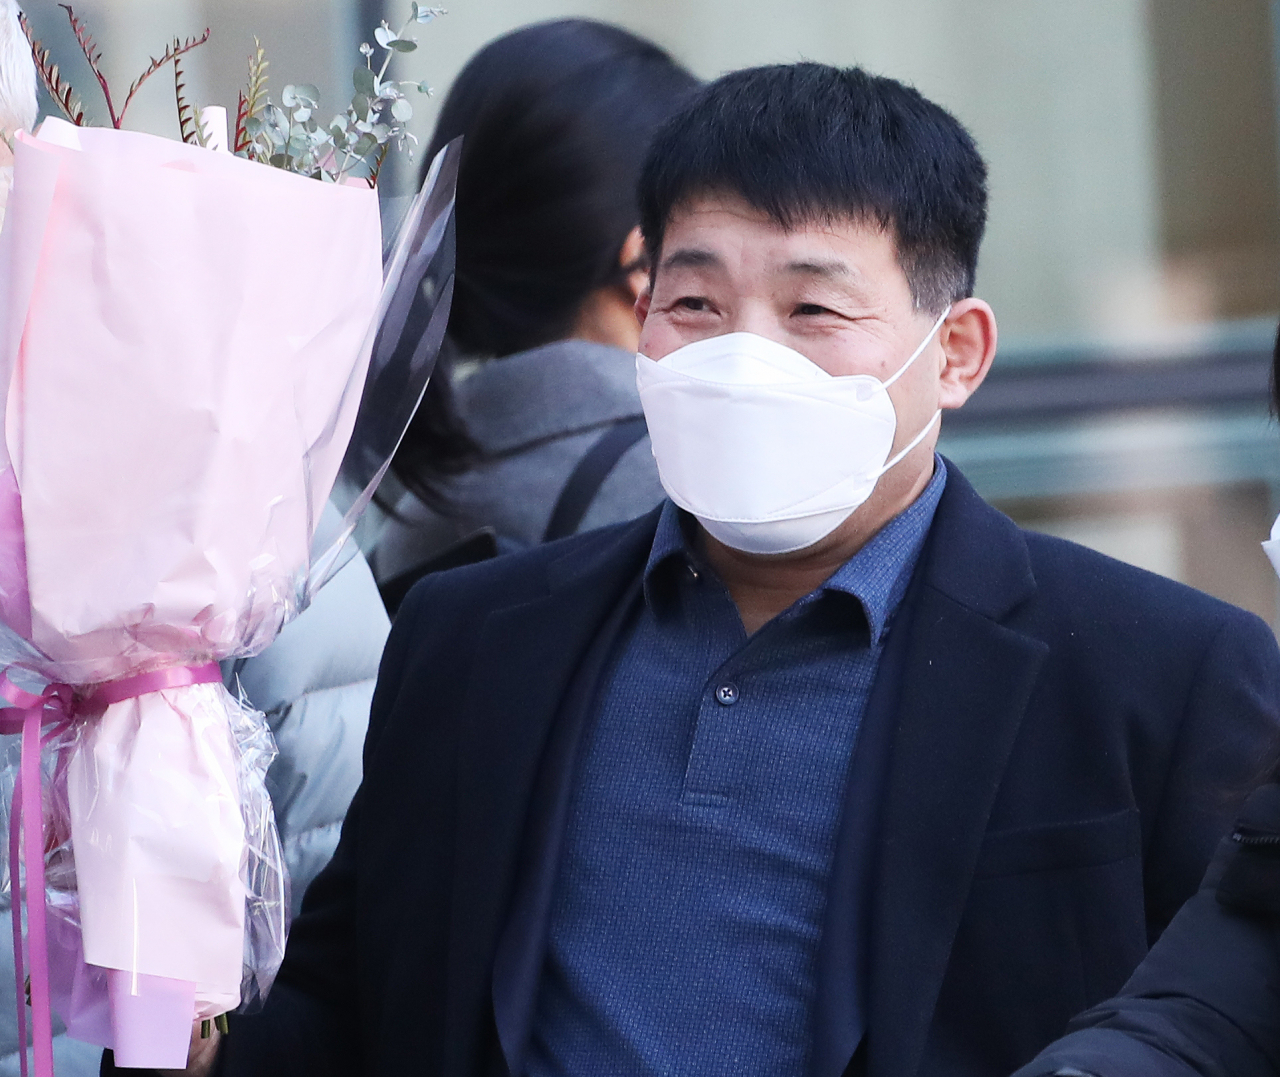 In this file photo, Yoon Seong-yeo, 53, leaves the Suwon District Court in Suwon, south of Seoul, on Dec. 17, 2020, after he was acquitted of a 1988 murder. (Yonhap)